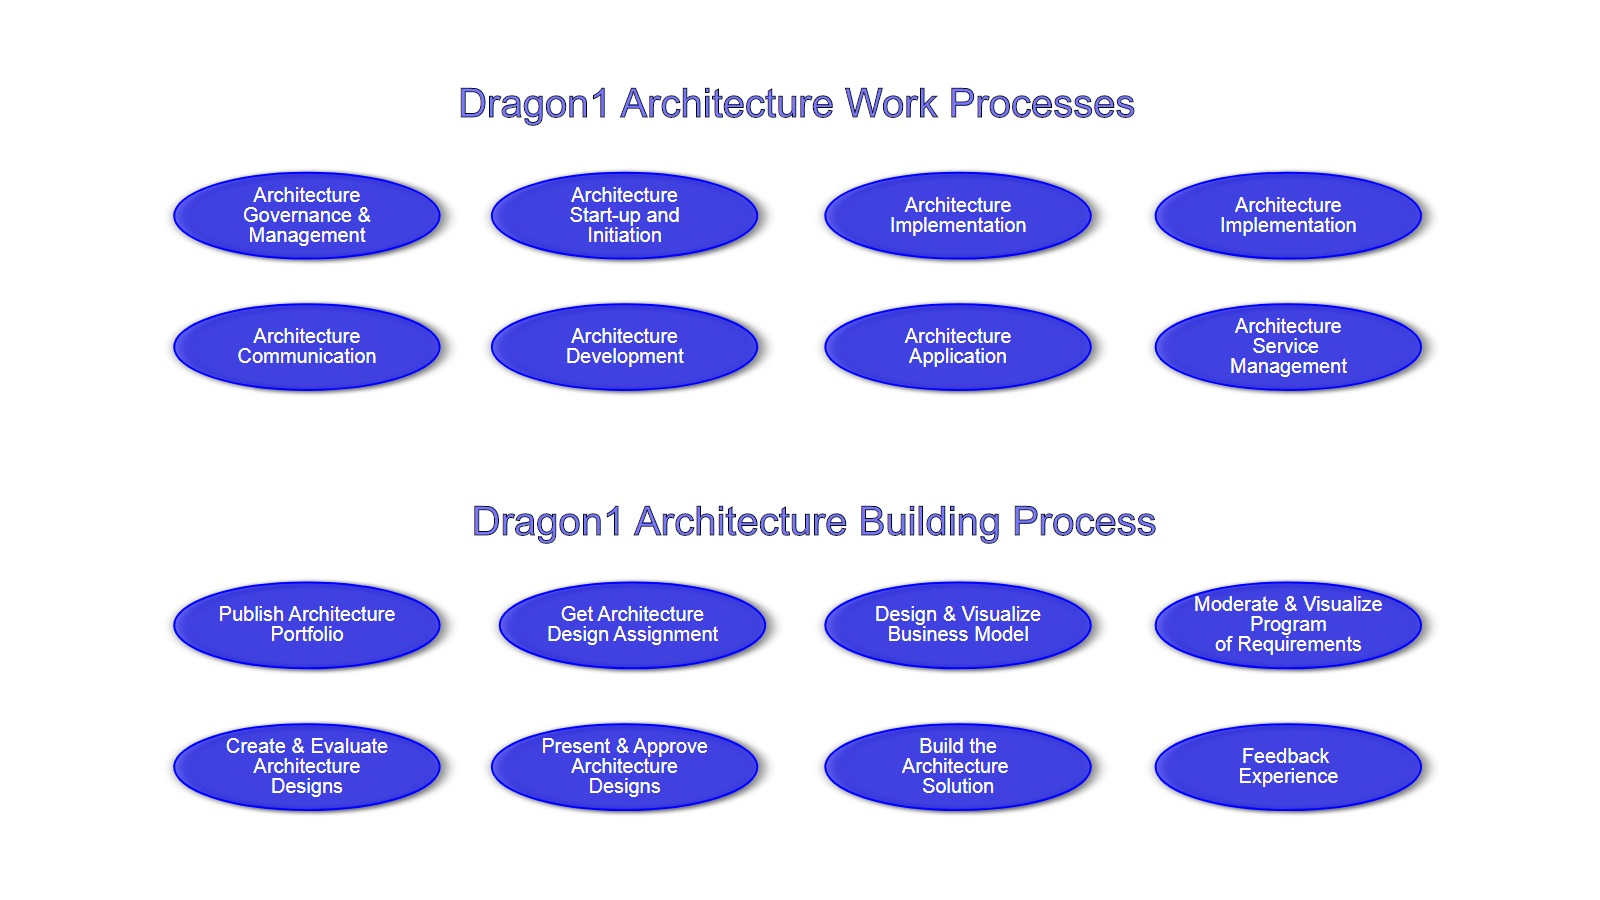 Dragon1 Architecture Processes